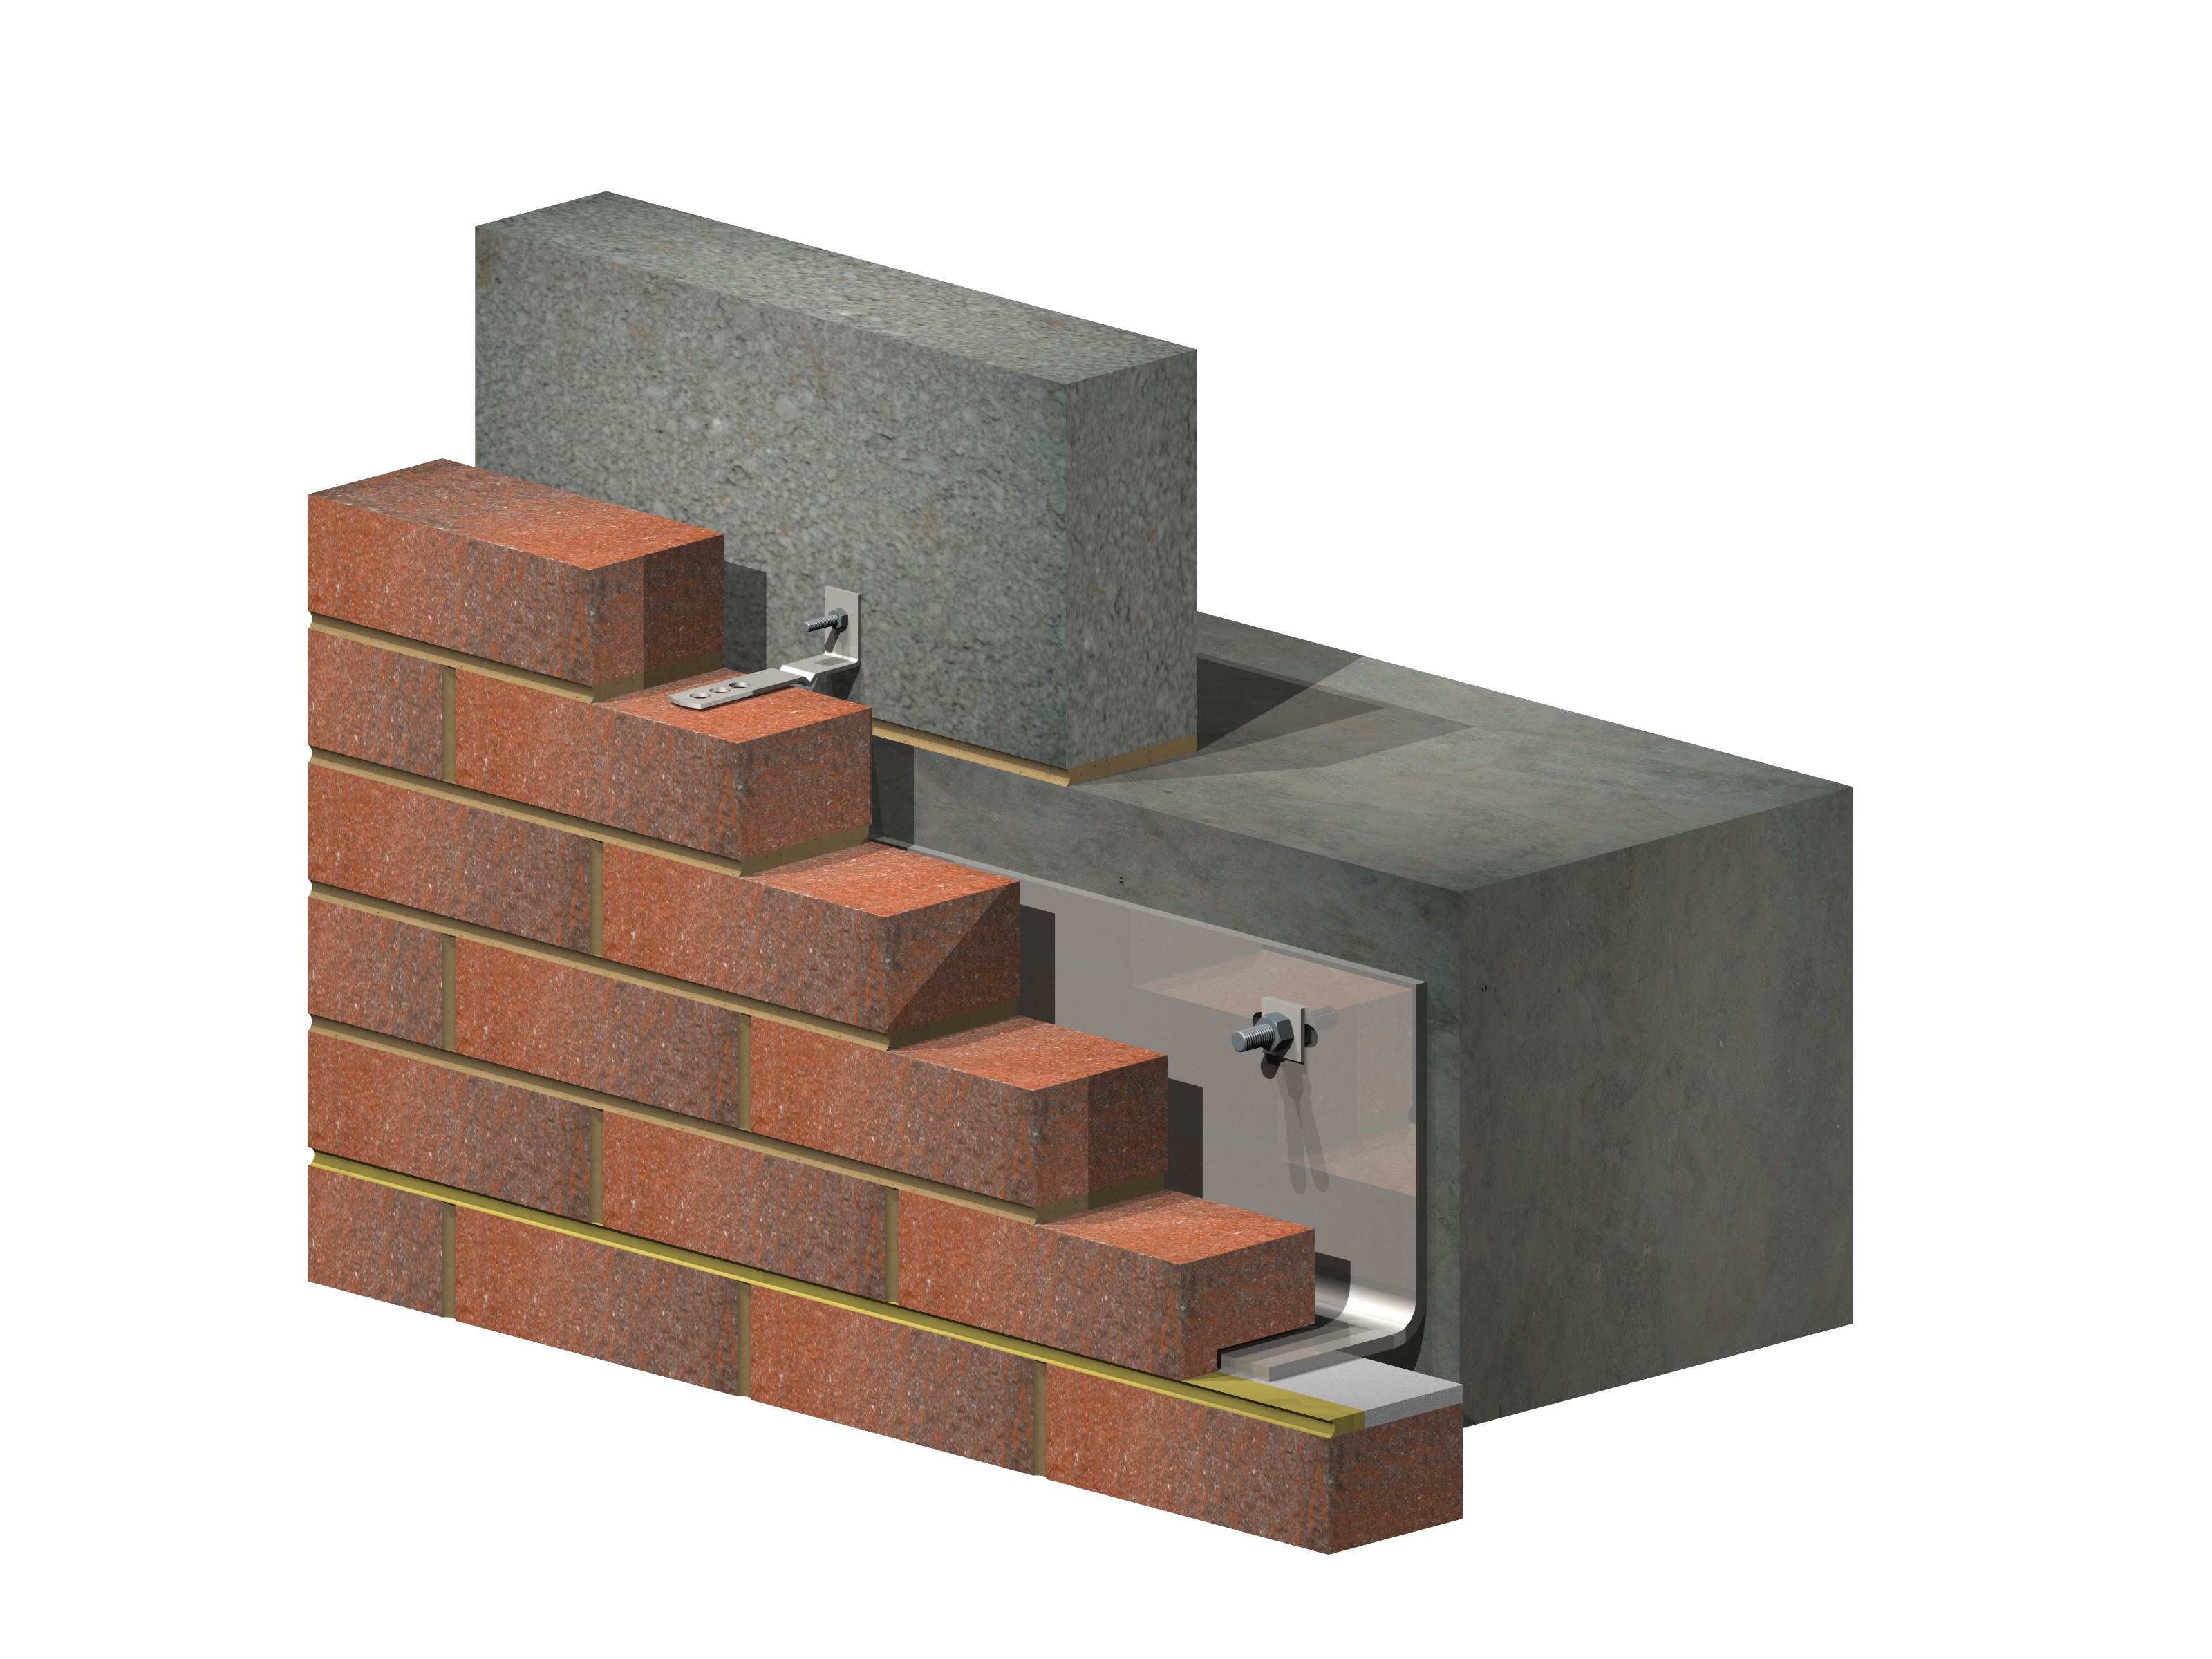 Type 2 Masonry Support System